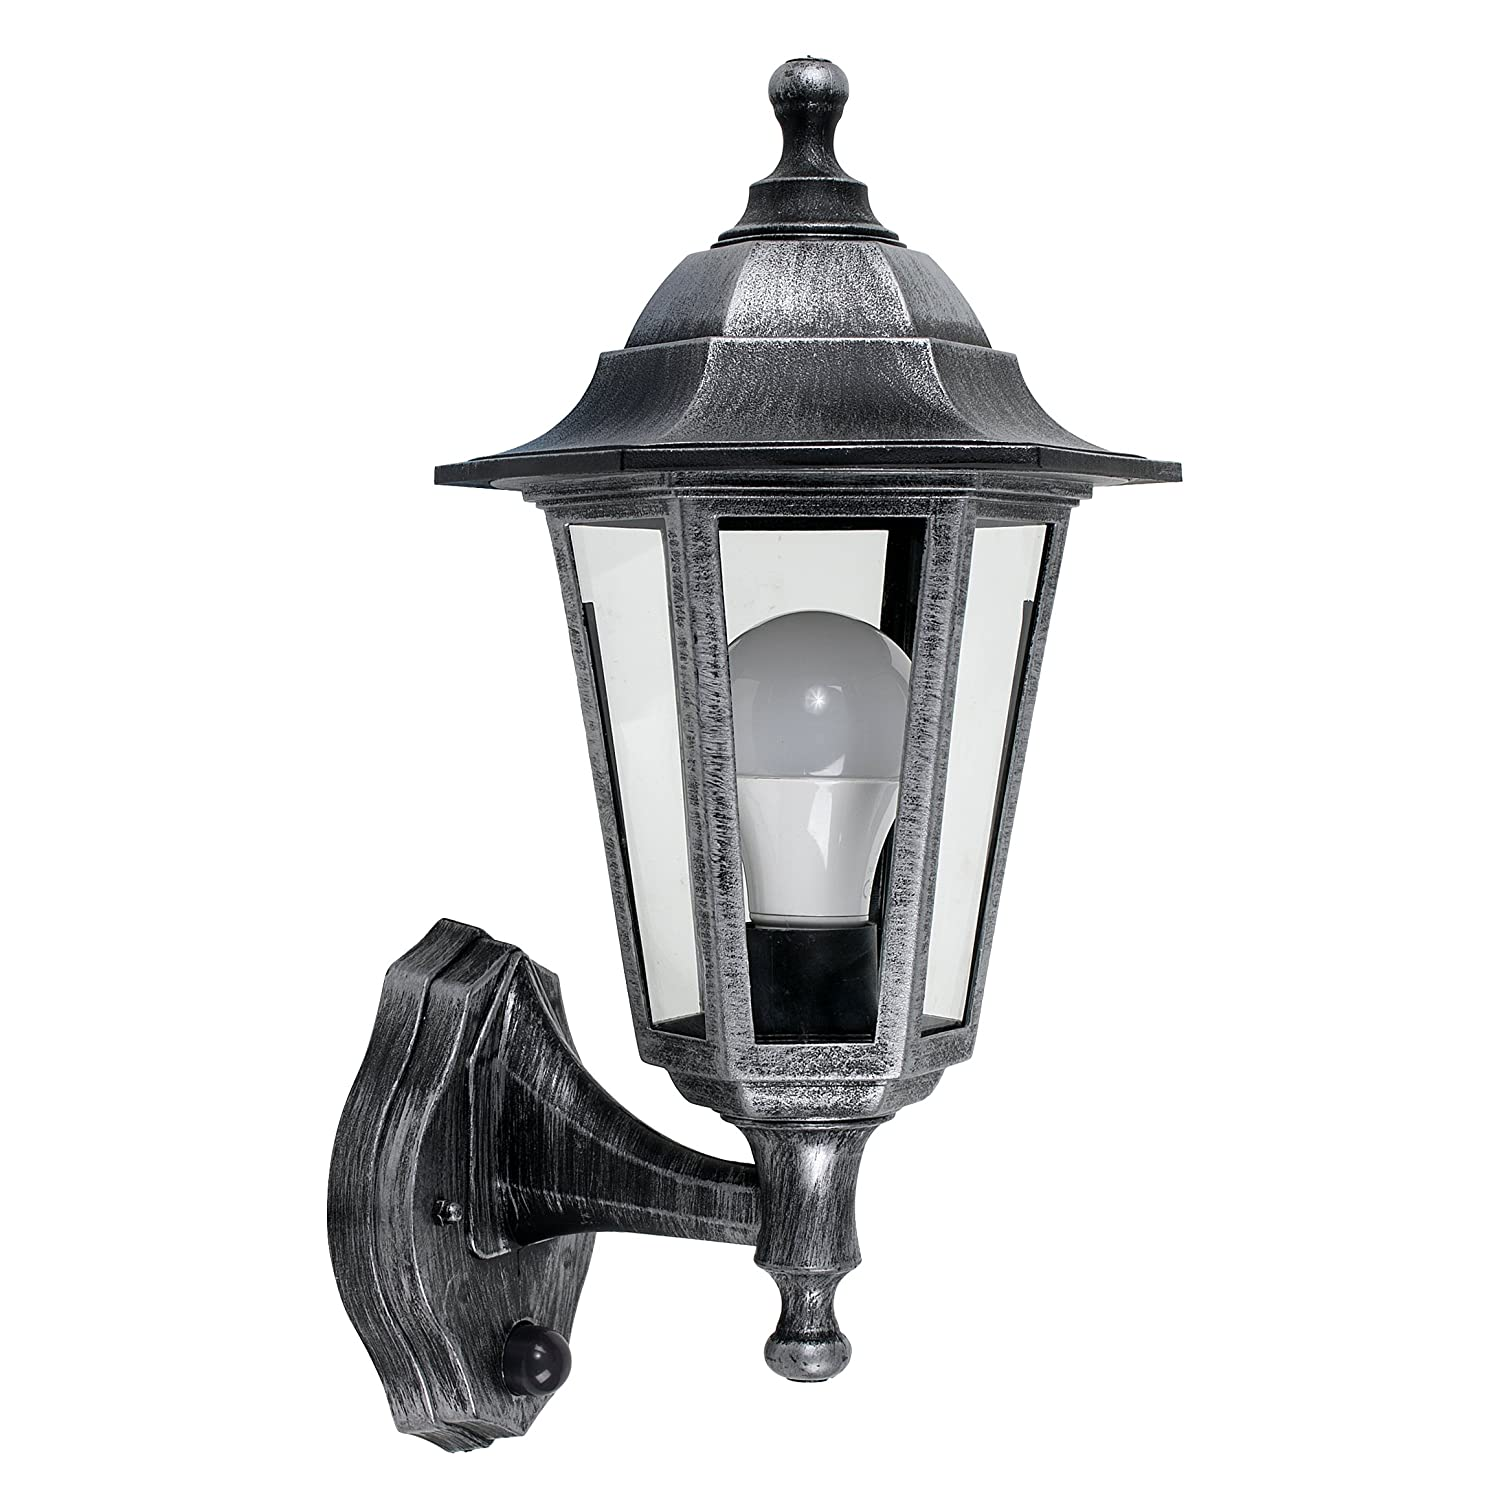 Vintage Victorian Style Brushed Silver And Black Outdoor Garden Security IP44 Rated Wall Light Lantern - Featuring An Integrated Dusk To Dawn Sensor MiniSun